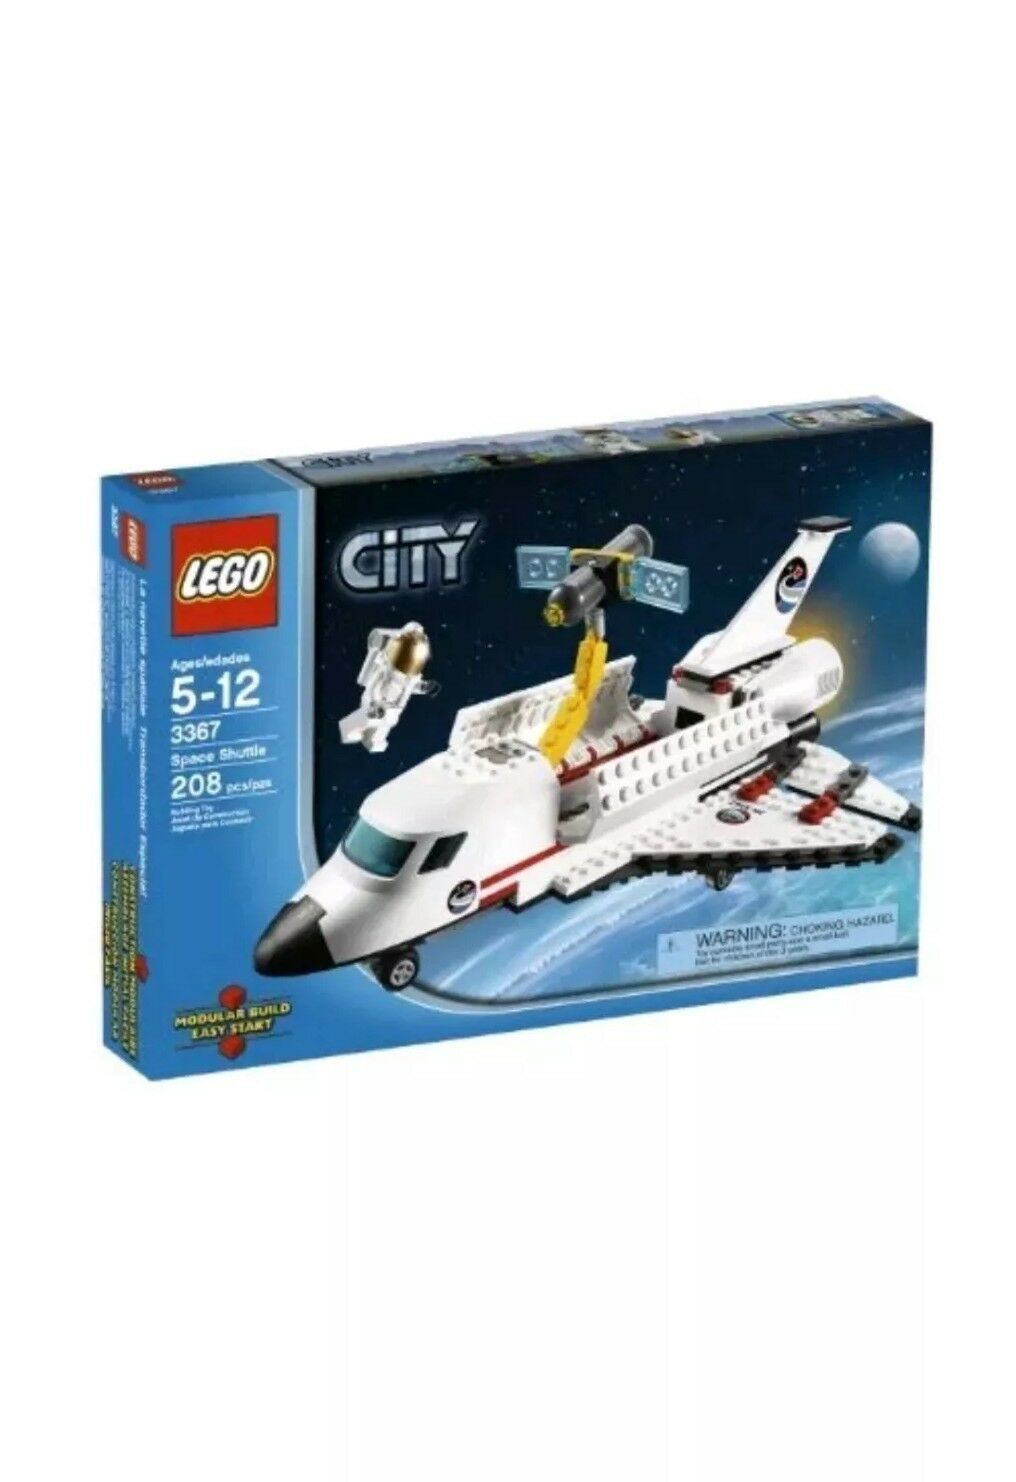 LEGO 3367 Lego City Space Shuttle RETIRED